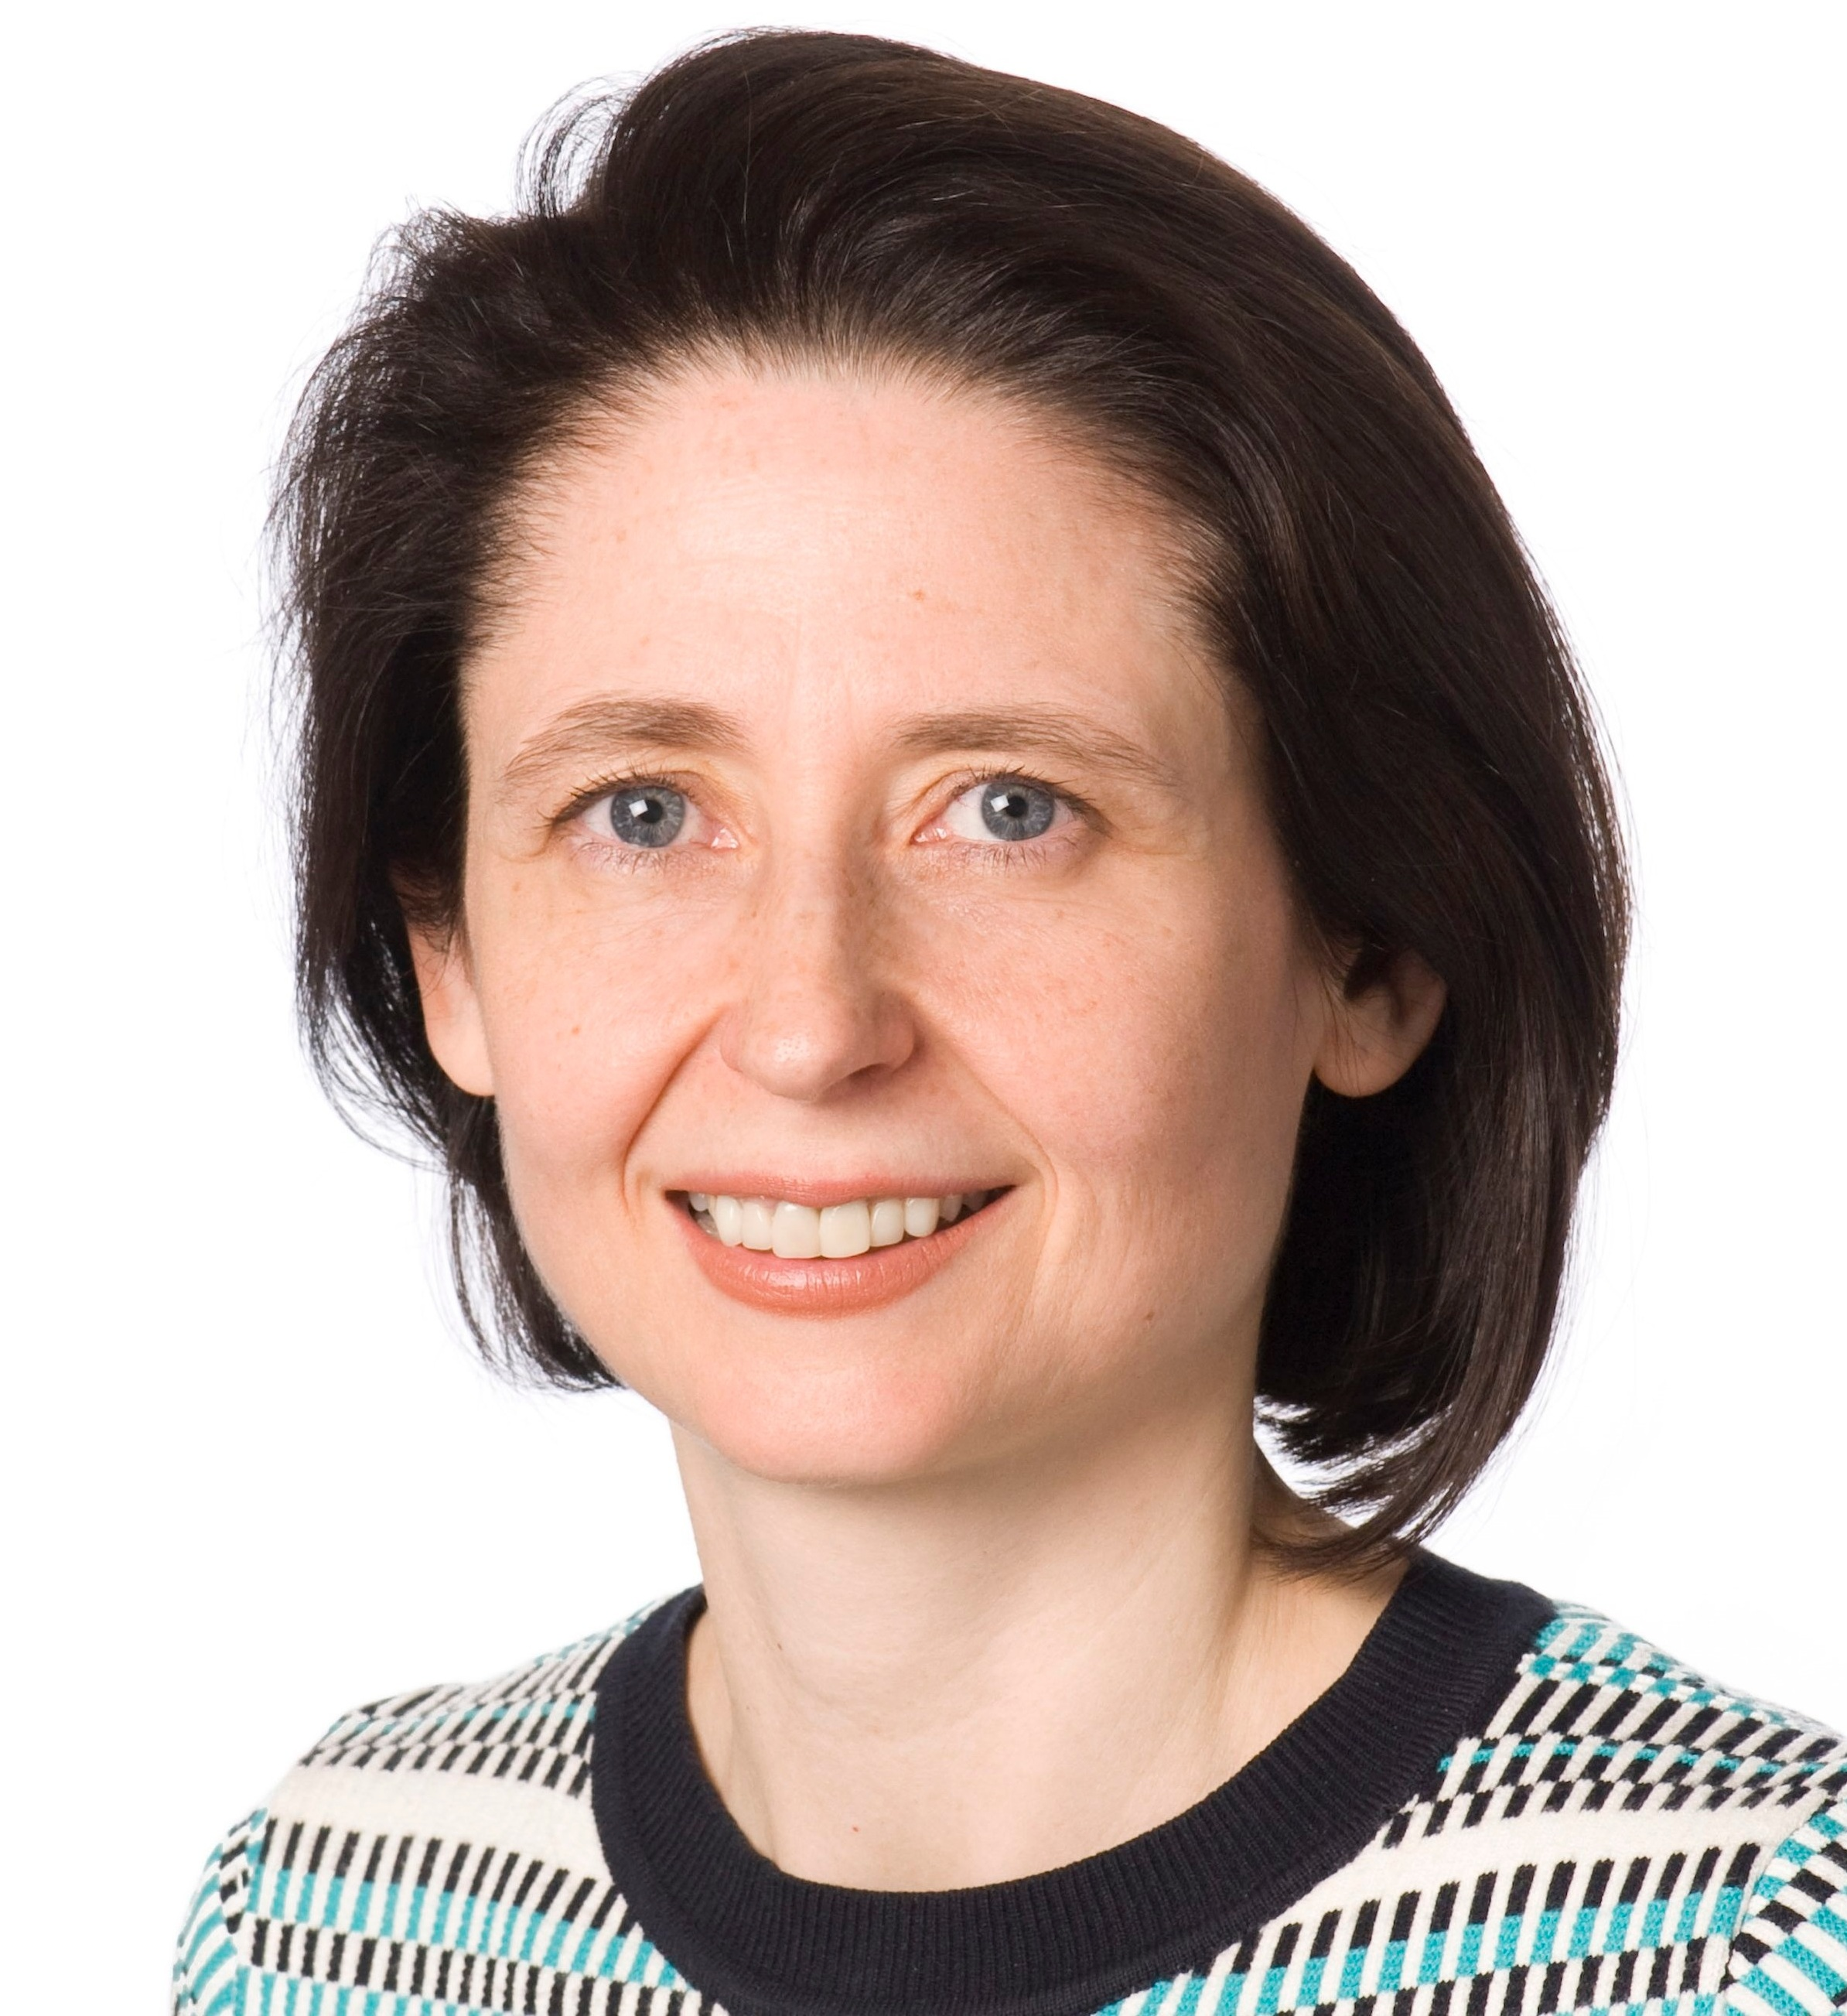 Dr Karen Croxson - Head of Research and Deputy Chief Economist at the UK Financial Conduct Authority